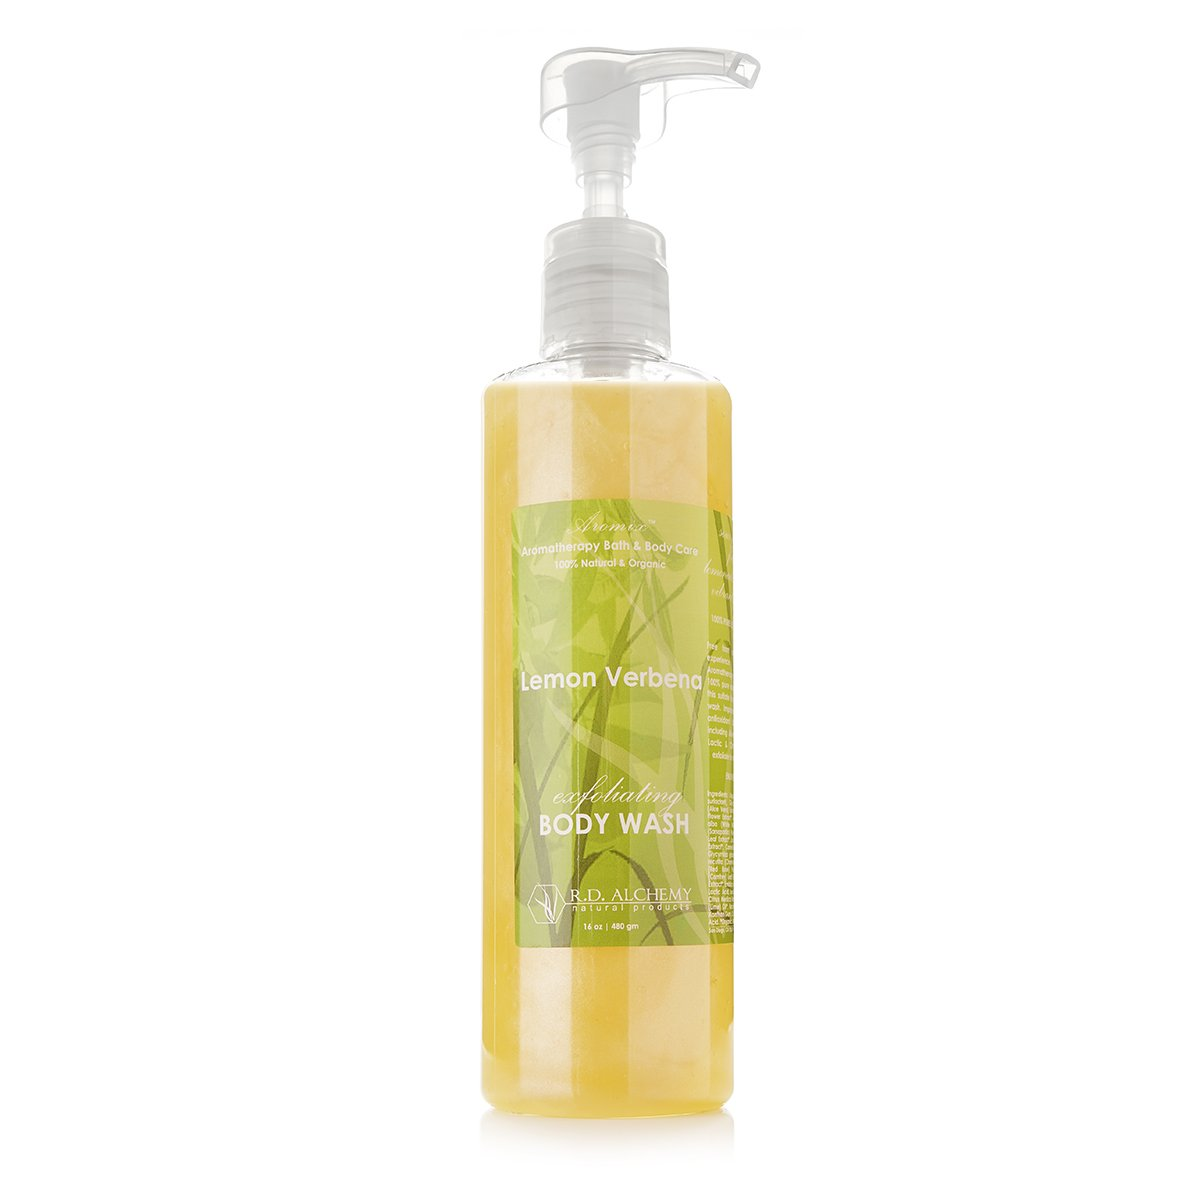 Lemon Verbena - Body Wash Shower Gel